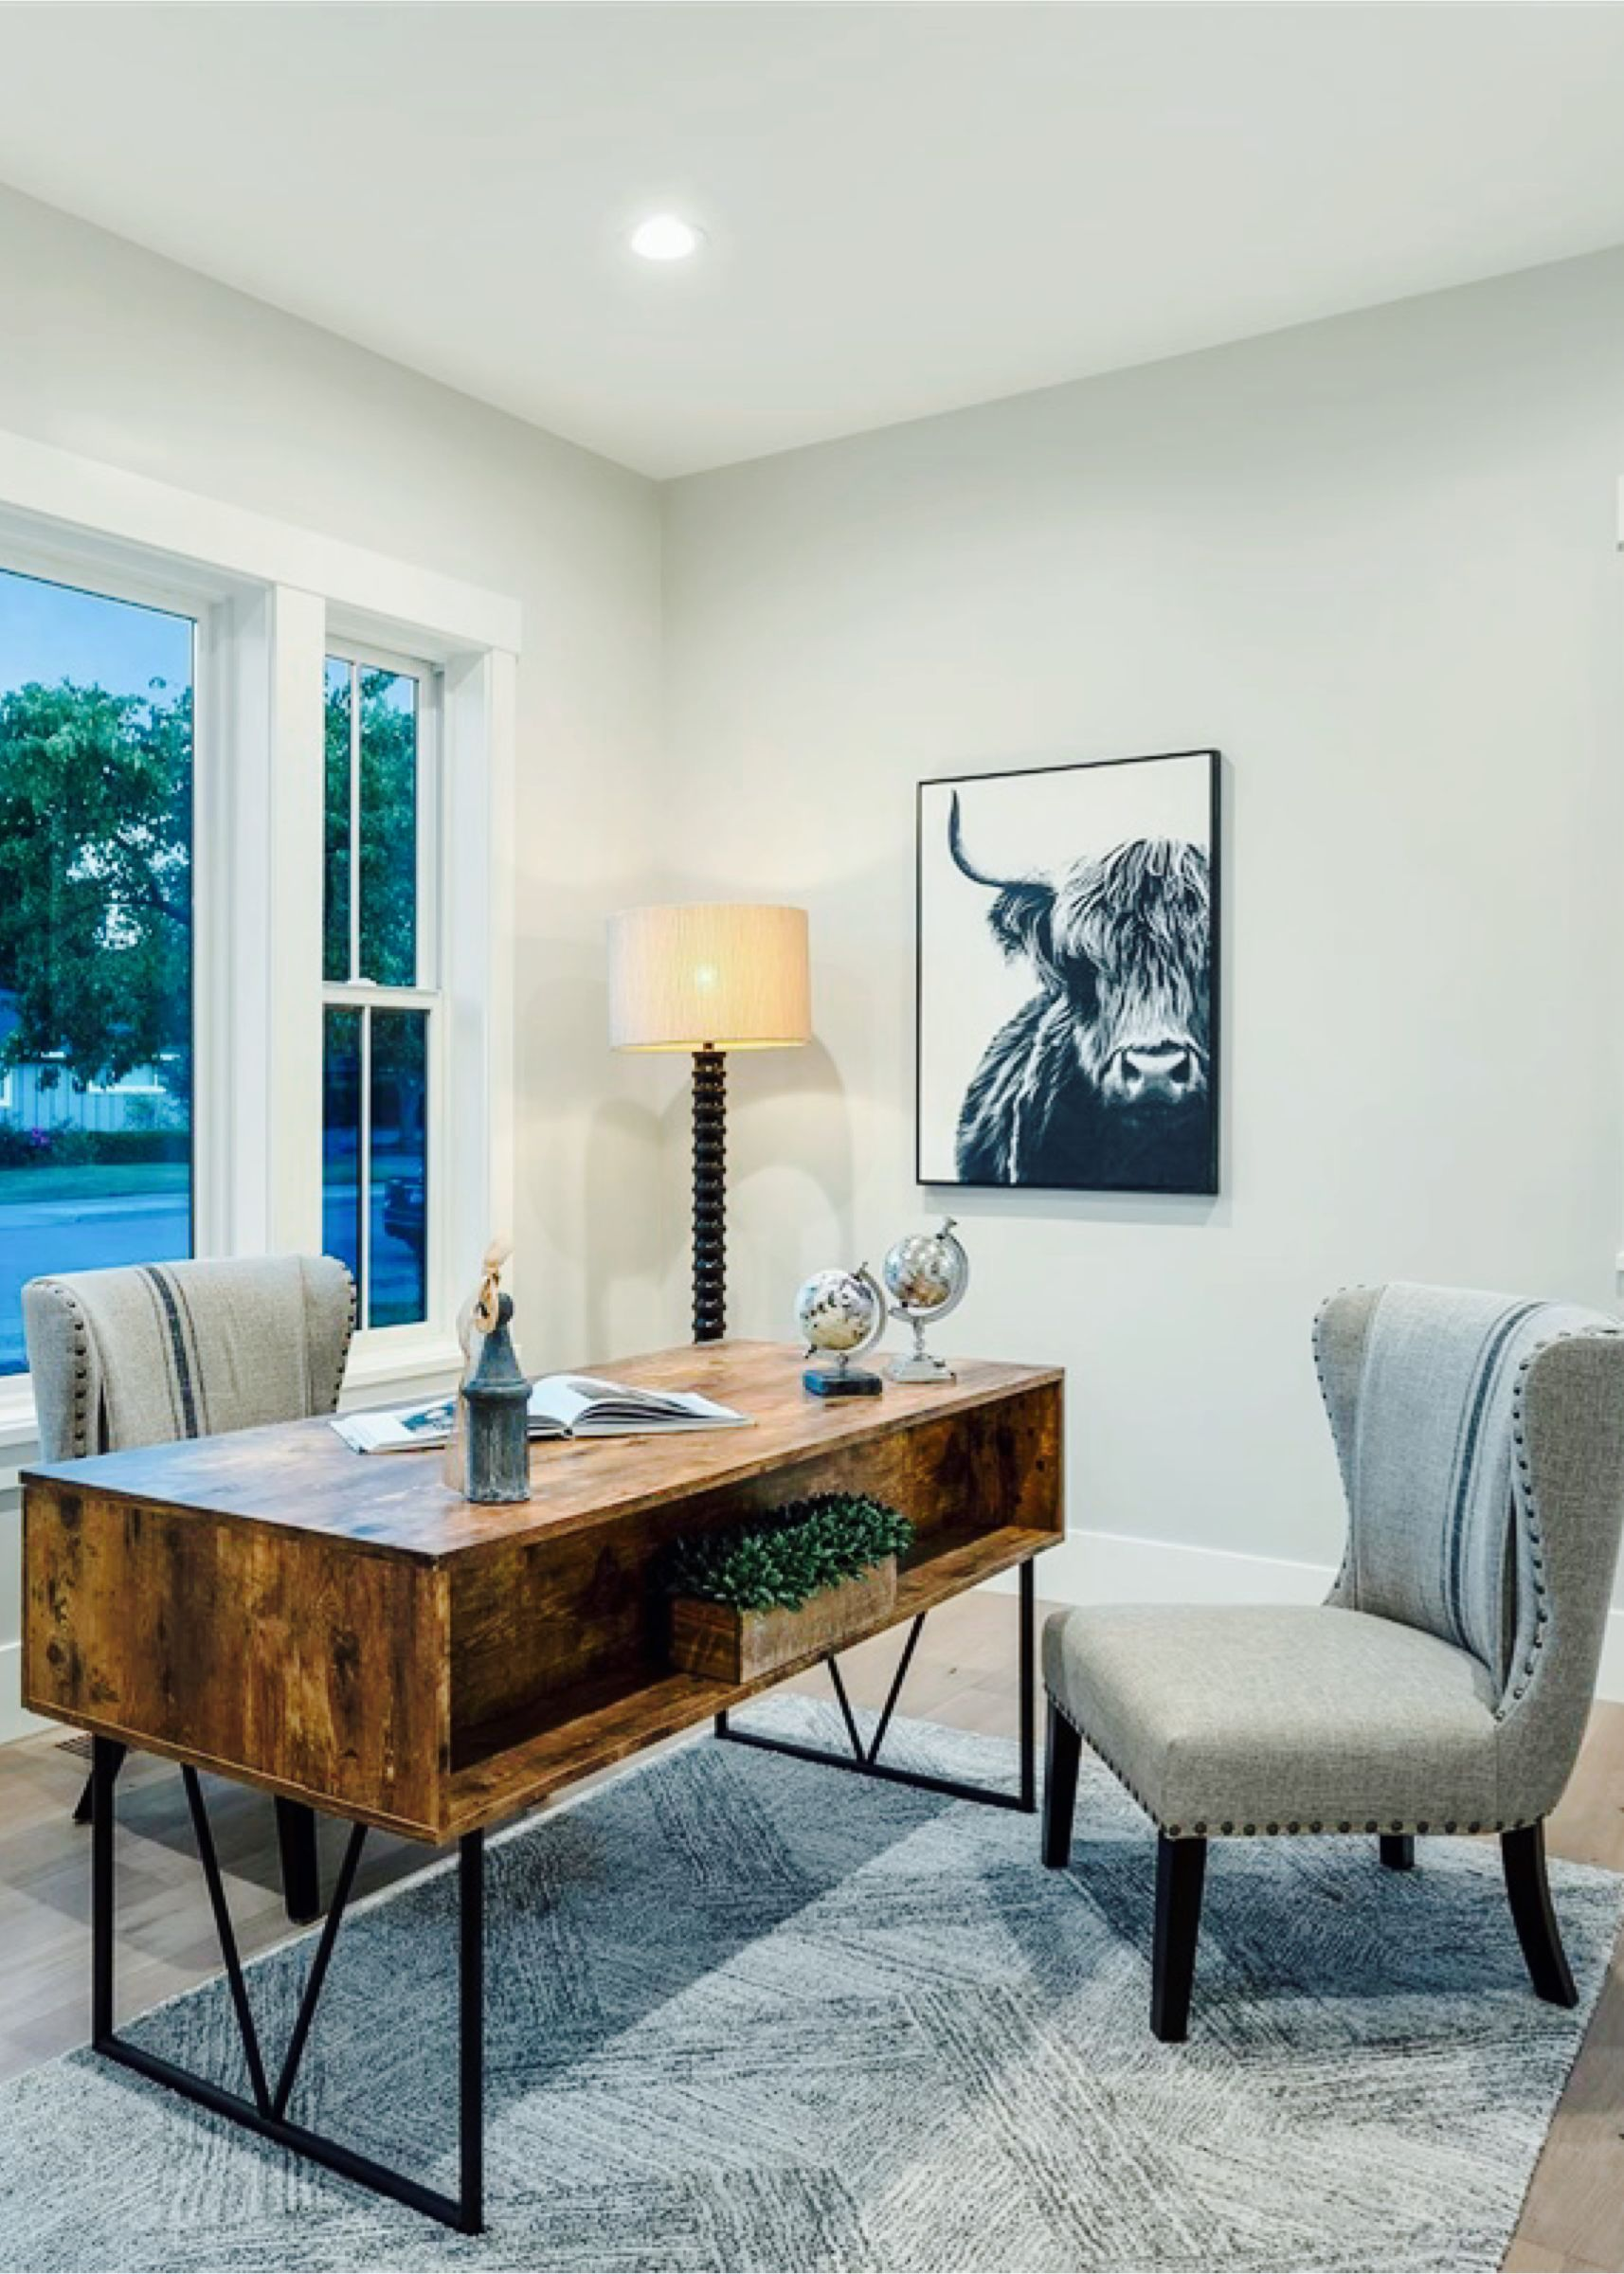 A great space for working from home. :) #interiordesign #interiors #interiorstyling #homedesign #homestyling #homedecor #dreamhome #livingspaces #interiordecorating